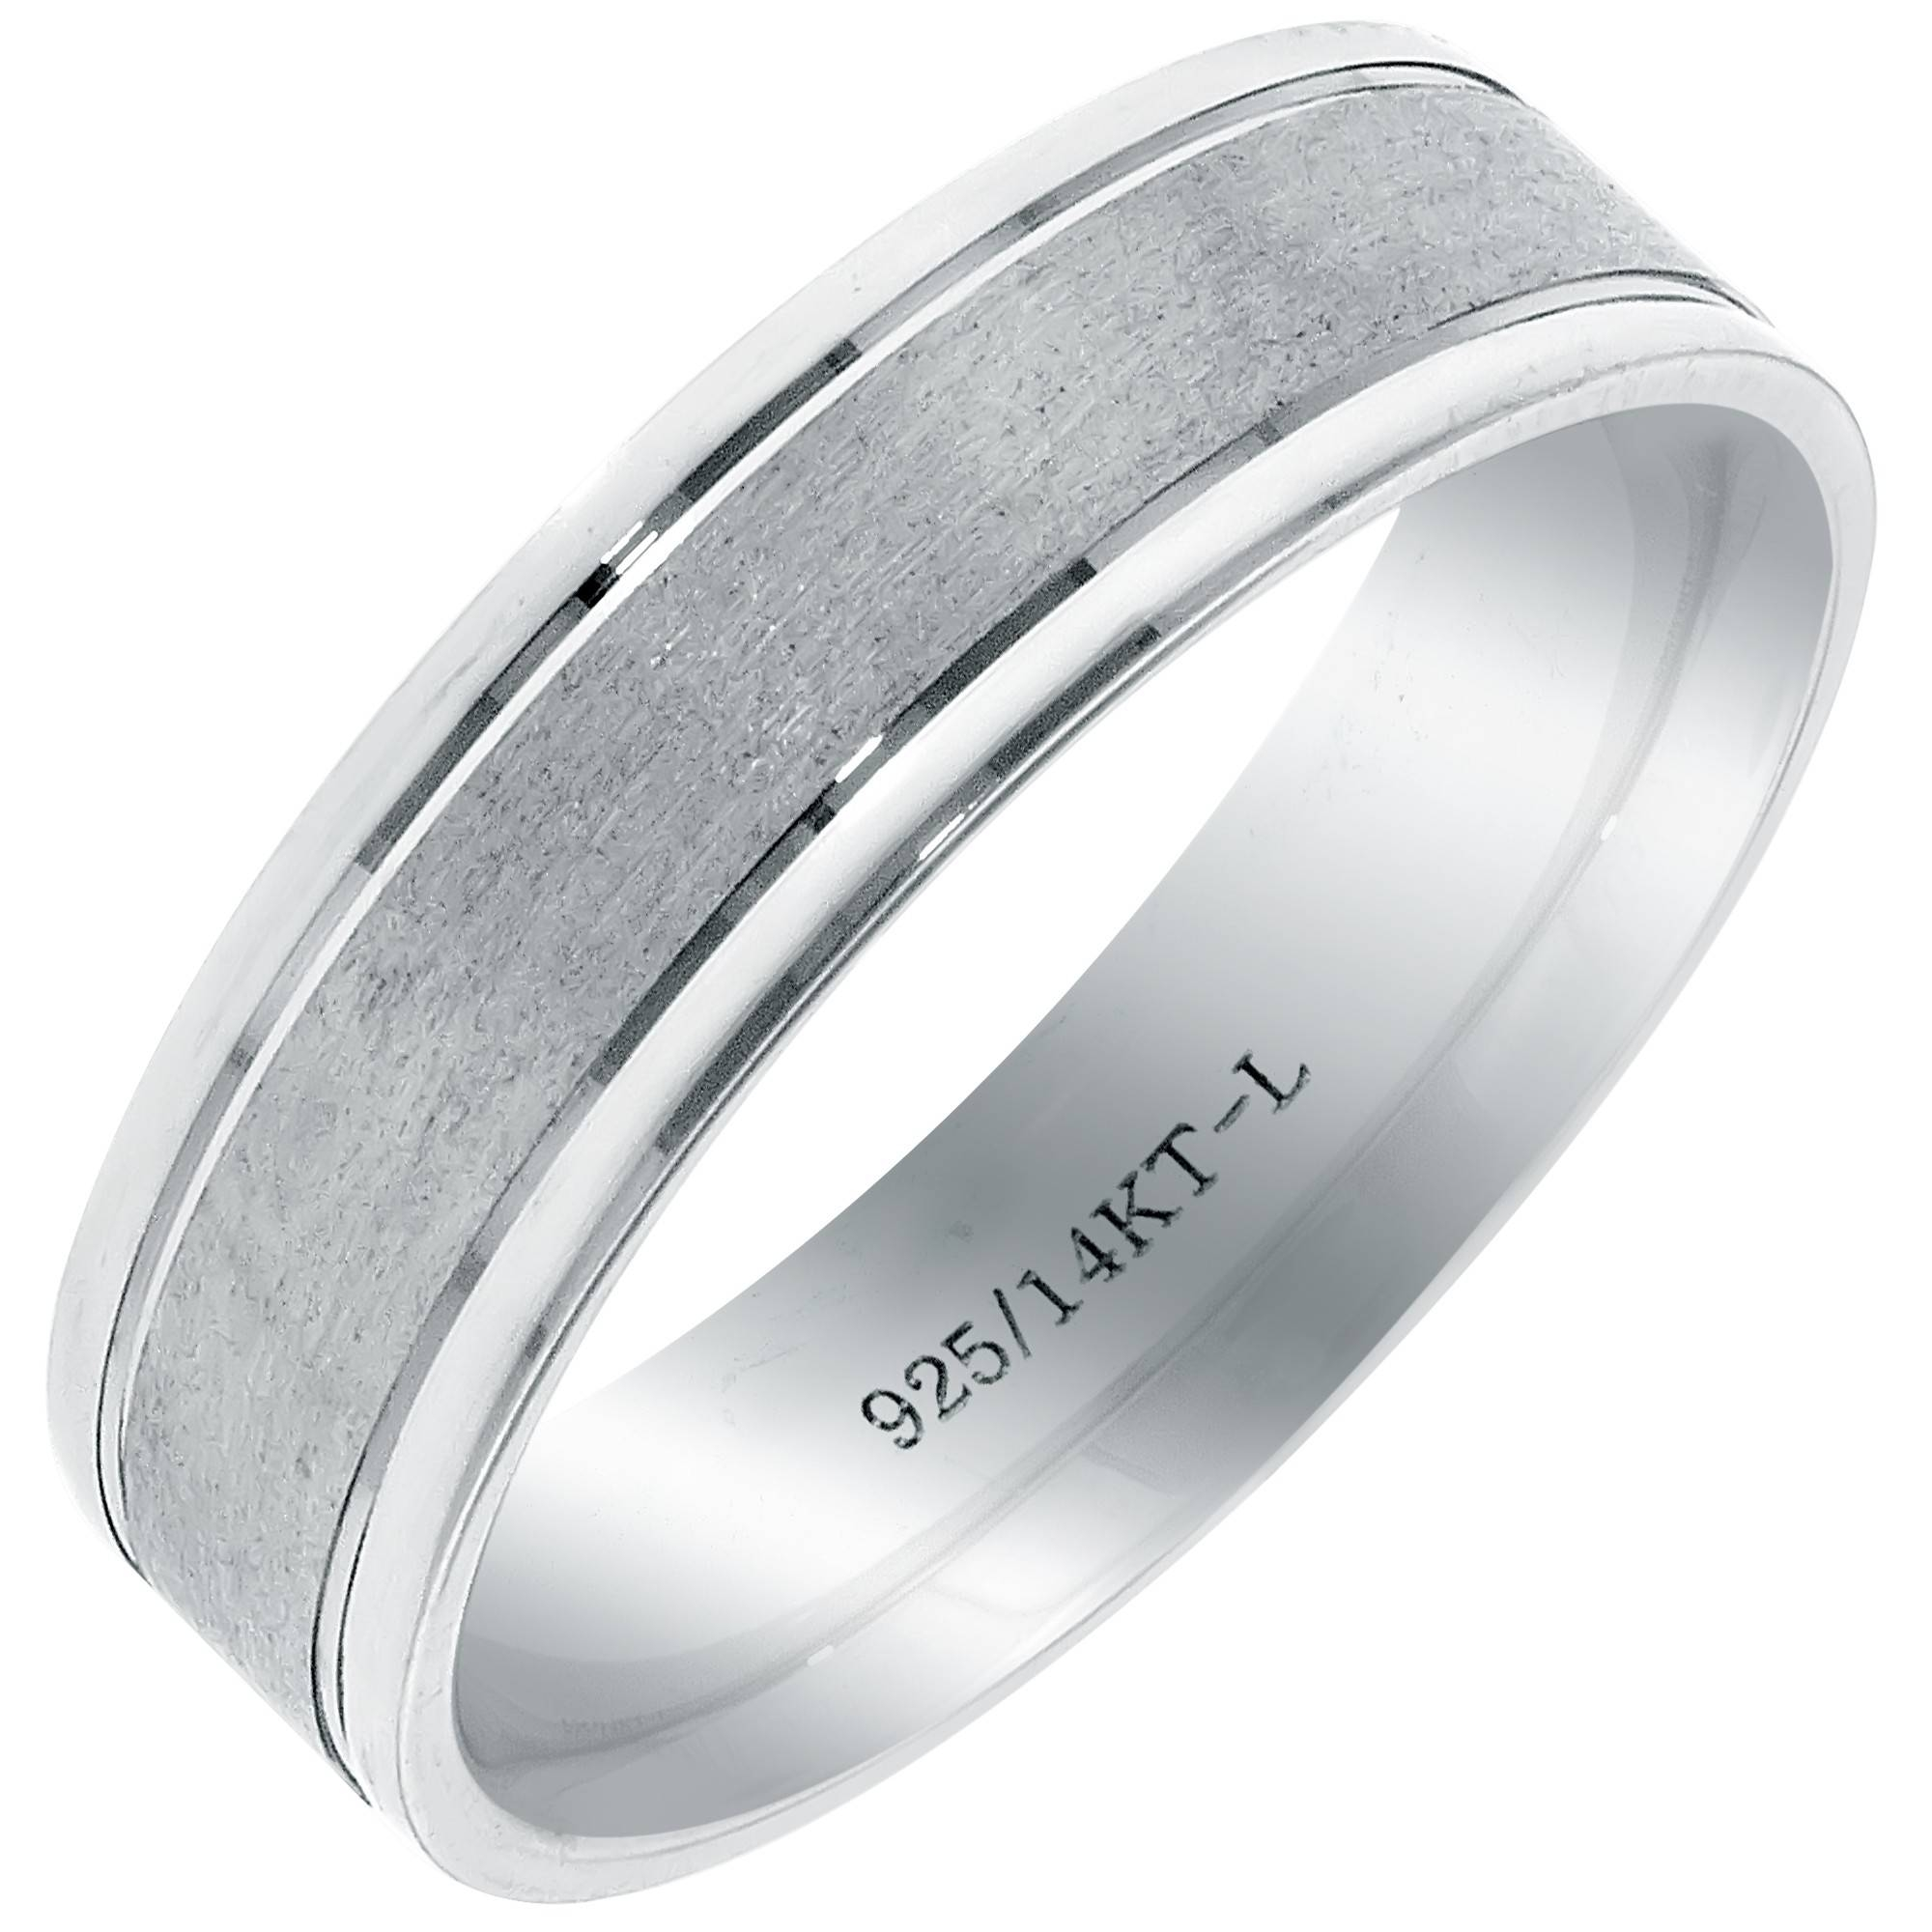 Bond2 Mens Wedding Band In 14Kt White Gold And Sterling Silver (6Mm) Pertaining To Mens Sterling Silver Wedding Bands (View 1 of 15)